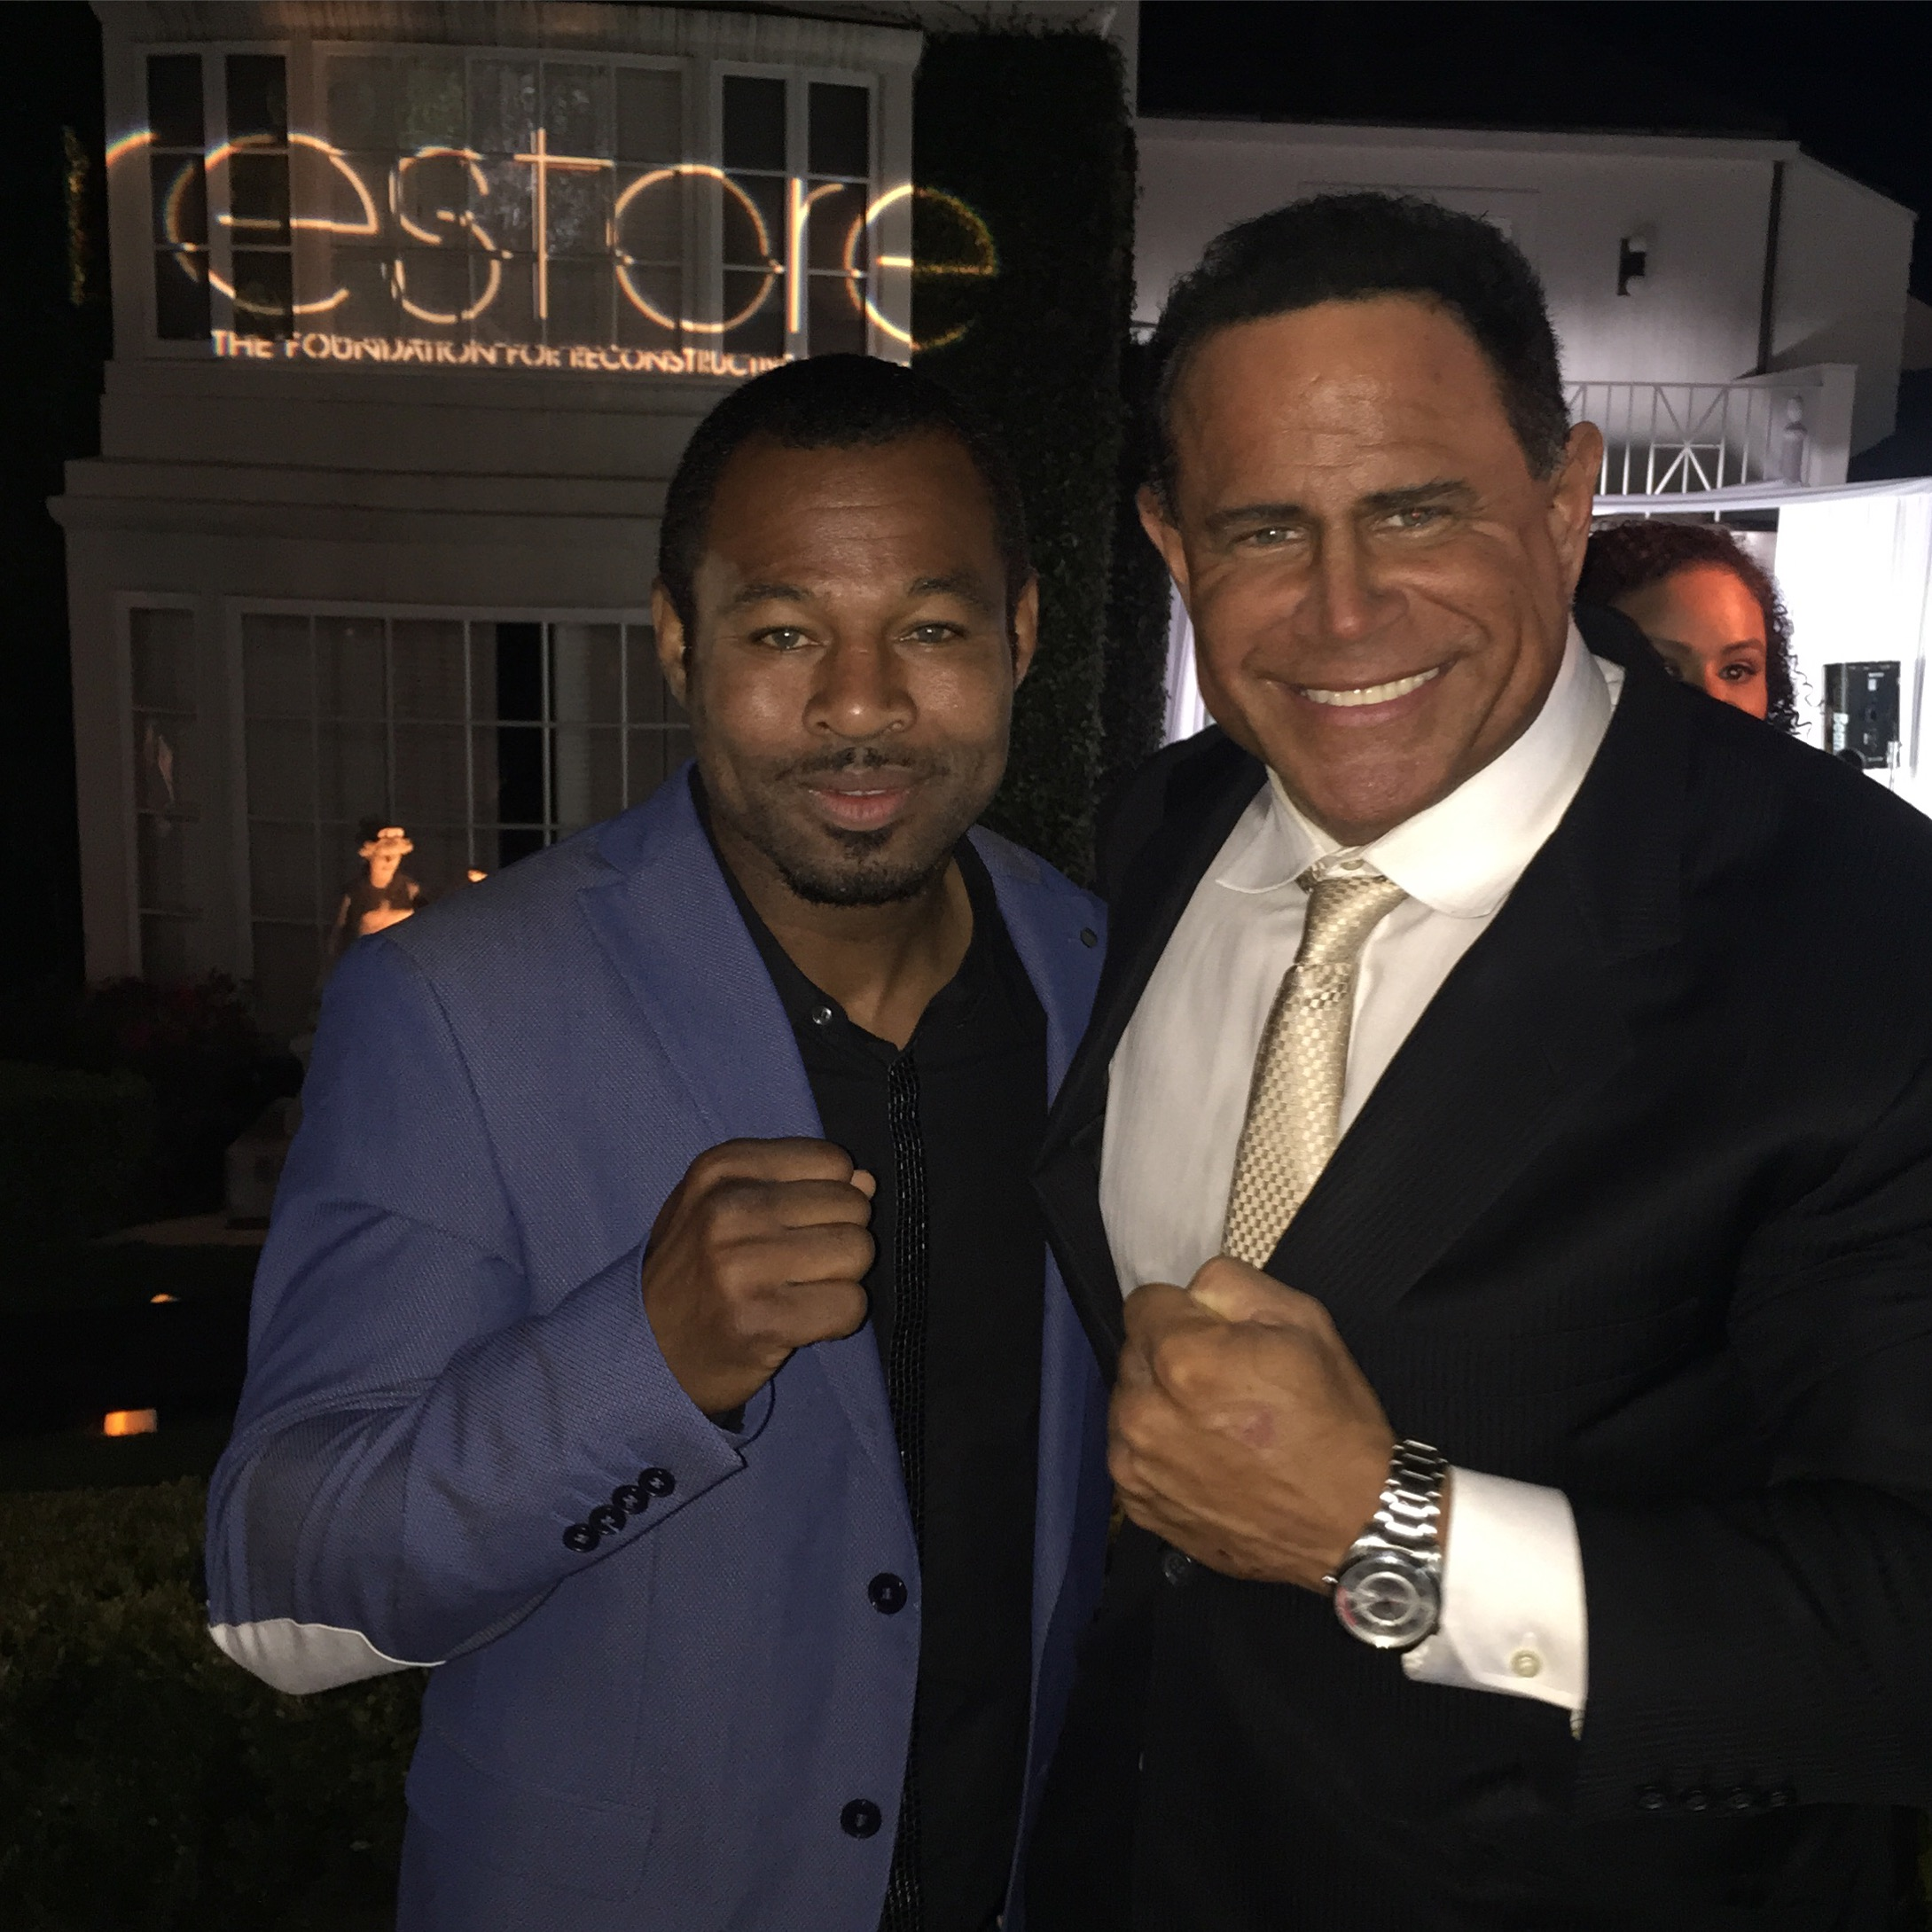 Keith Middlebrook, Keith Middlebrook Bio, Keith Middlebrook Net Worth, Keith Middlebrook Pro Sports, Shane Mosley, Floyd Mayweather, Keith Middlebrook Iron Man, Iron Man 2, TMZ, Keith Middlebrook TMZ, Shane Mosley, keith Middlebrook.